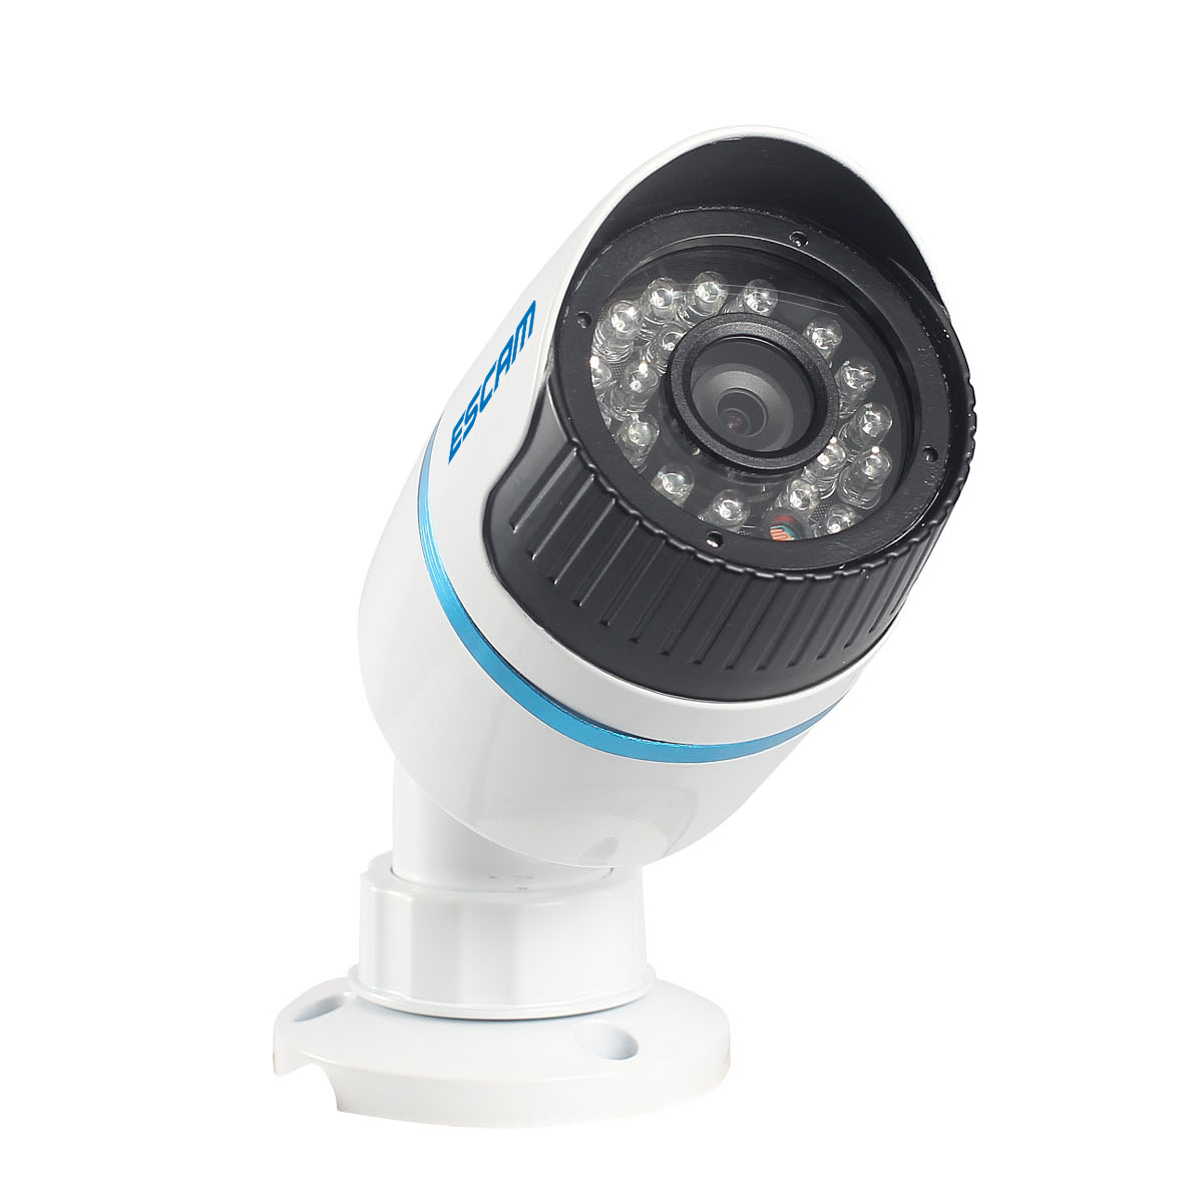 ФОТО ESCAM Q630M 720P Outdoor ip camera 720P Camera IP network  6MM lens cam for CCTV System